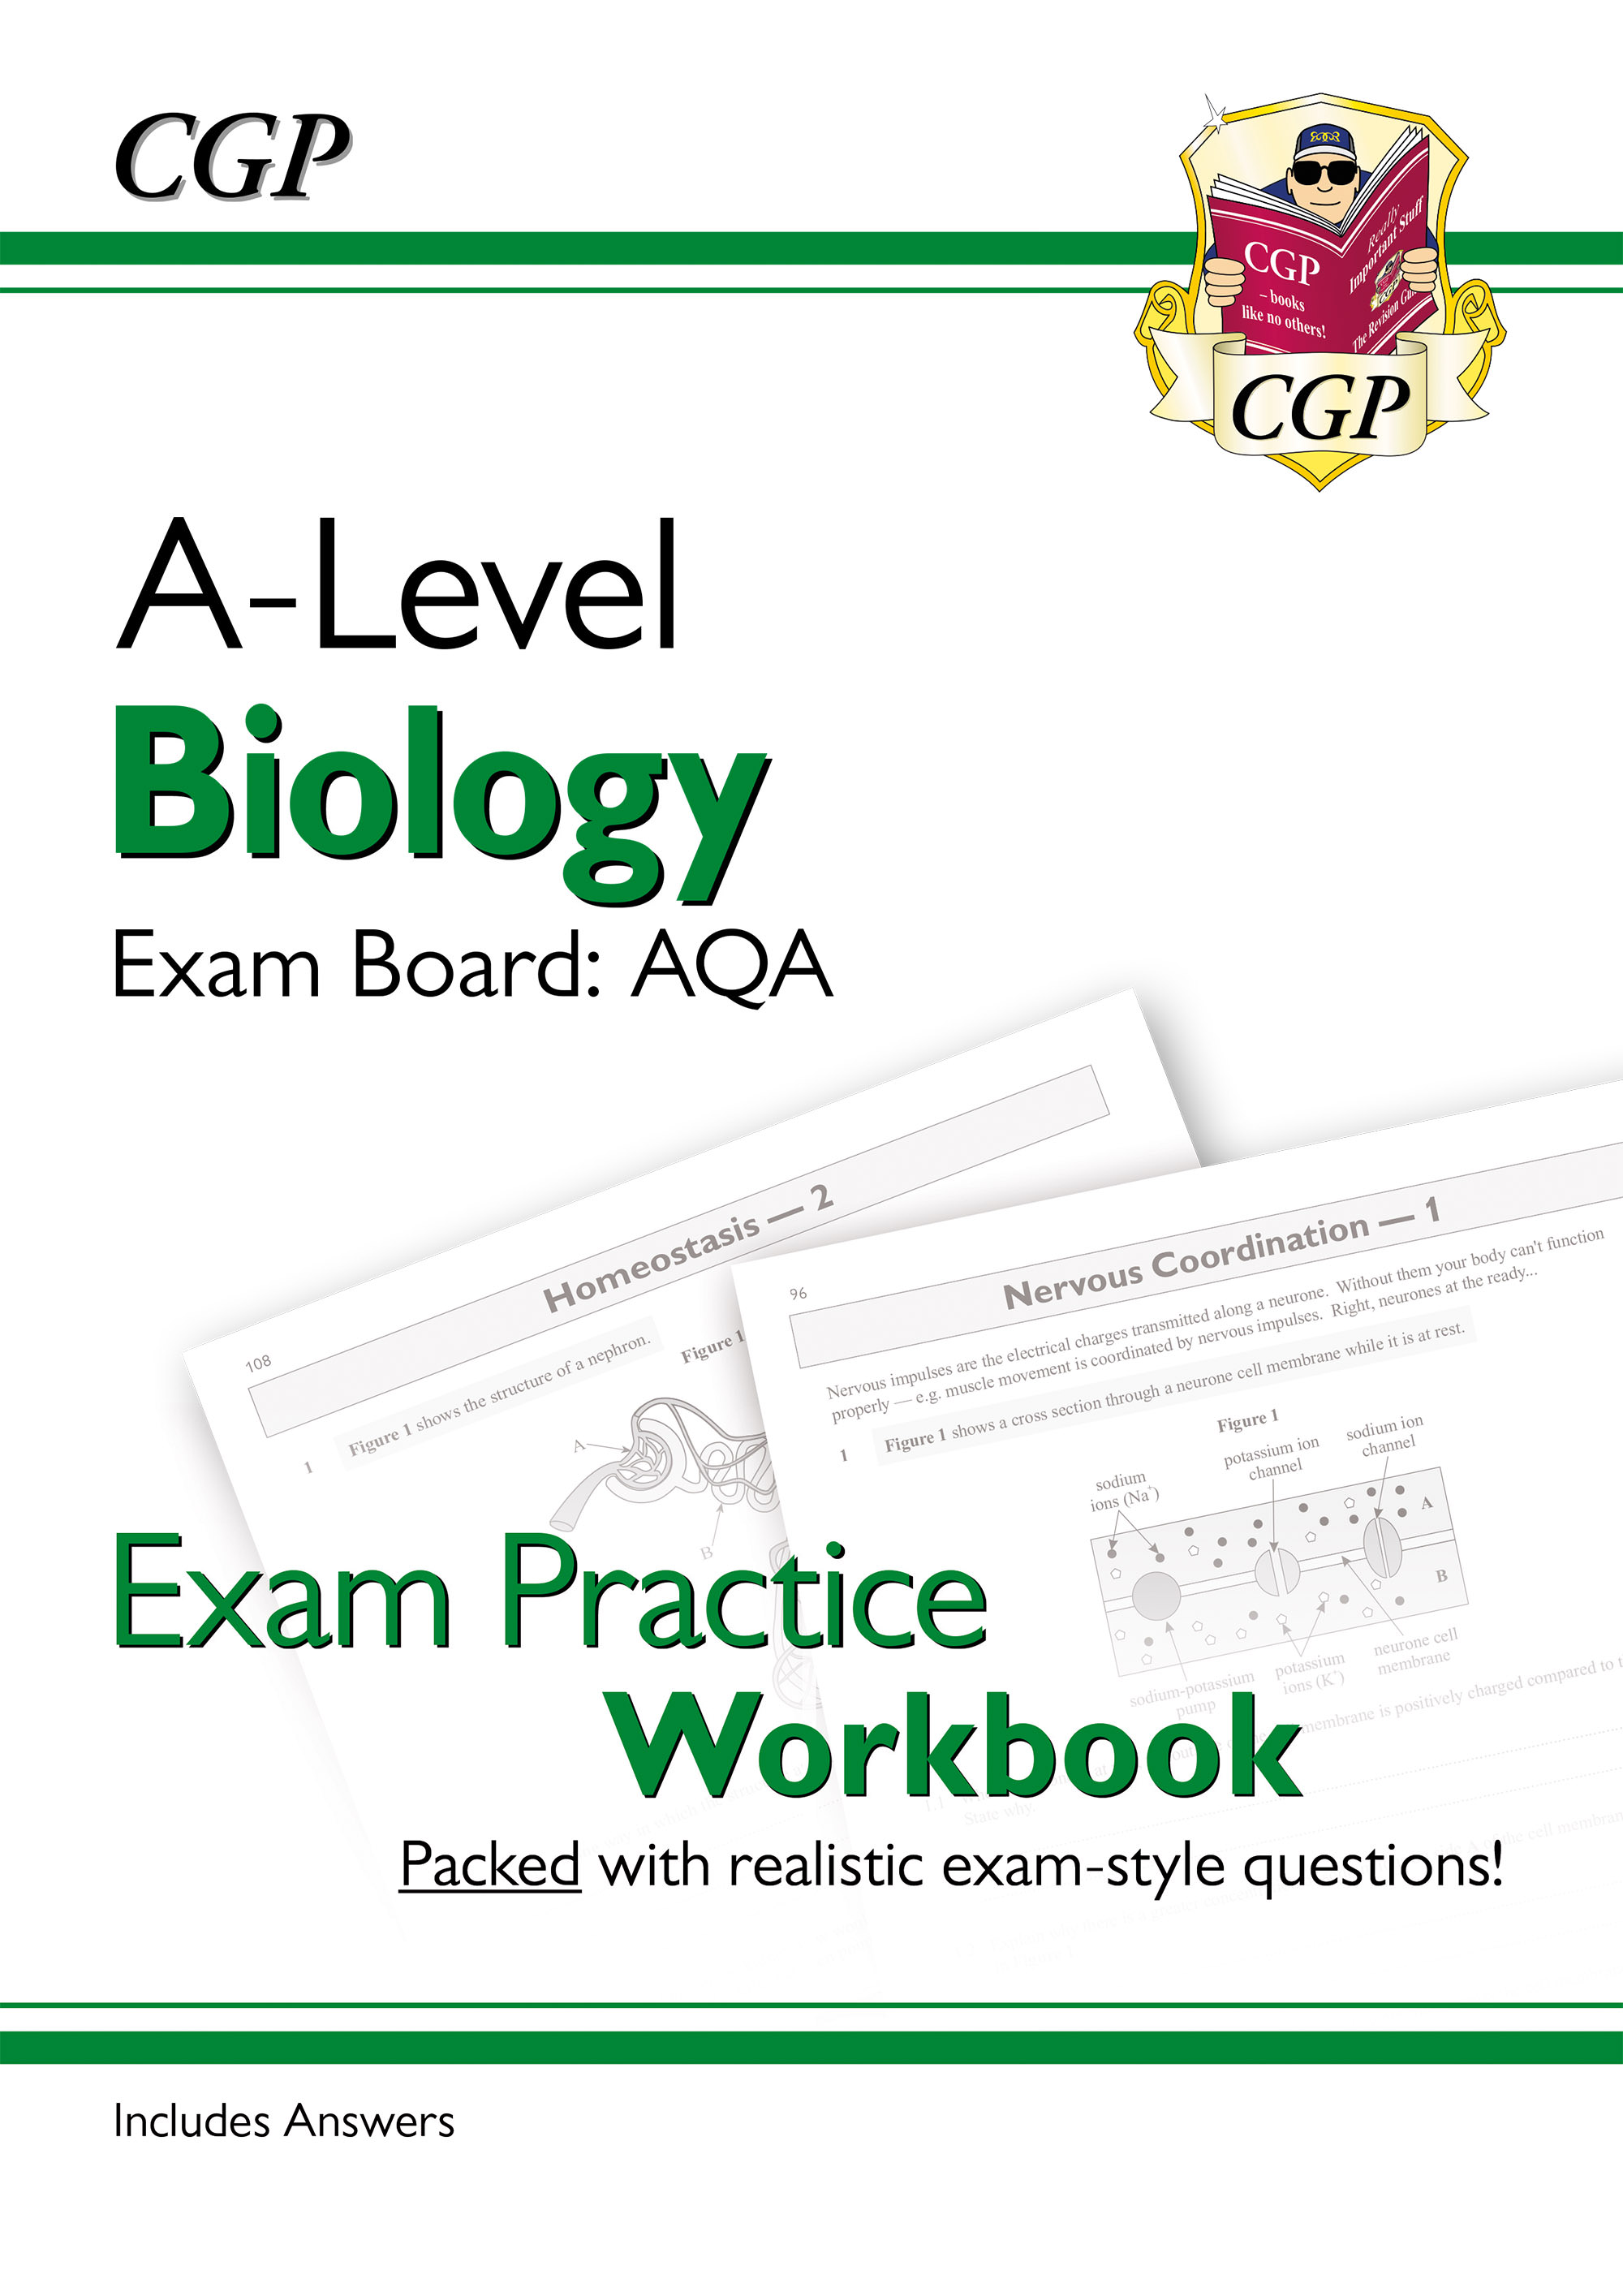 BAQ71DK - New A-Level Biology: AQA Year 1 & 2 Exam Practice Workbook - includes Answers